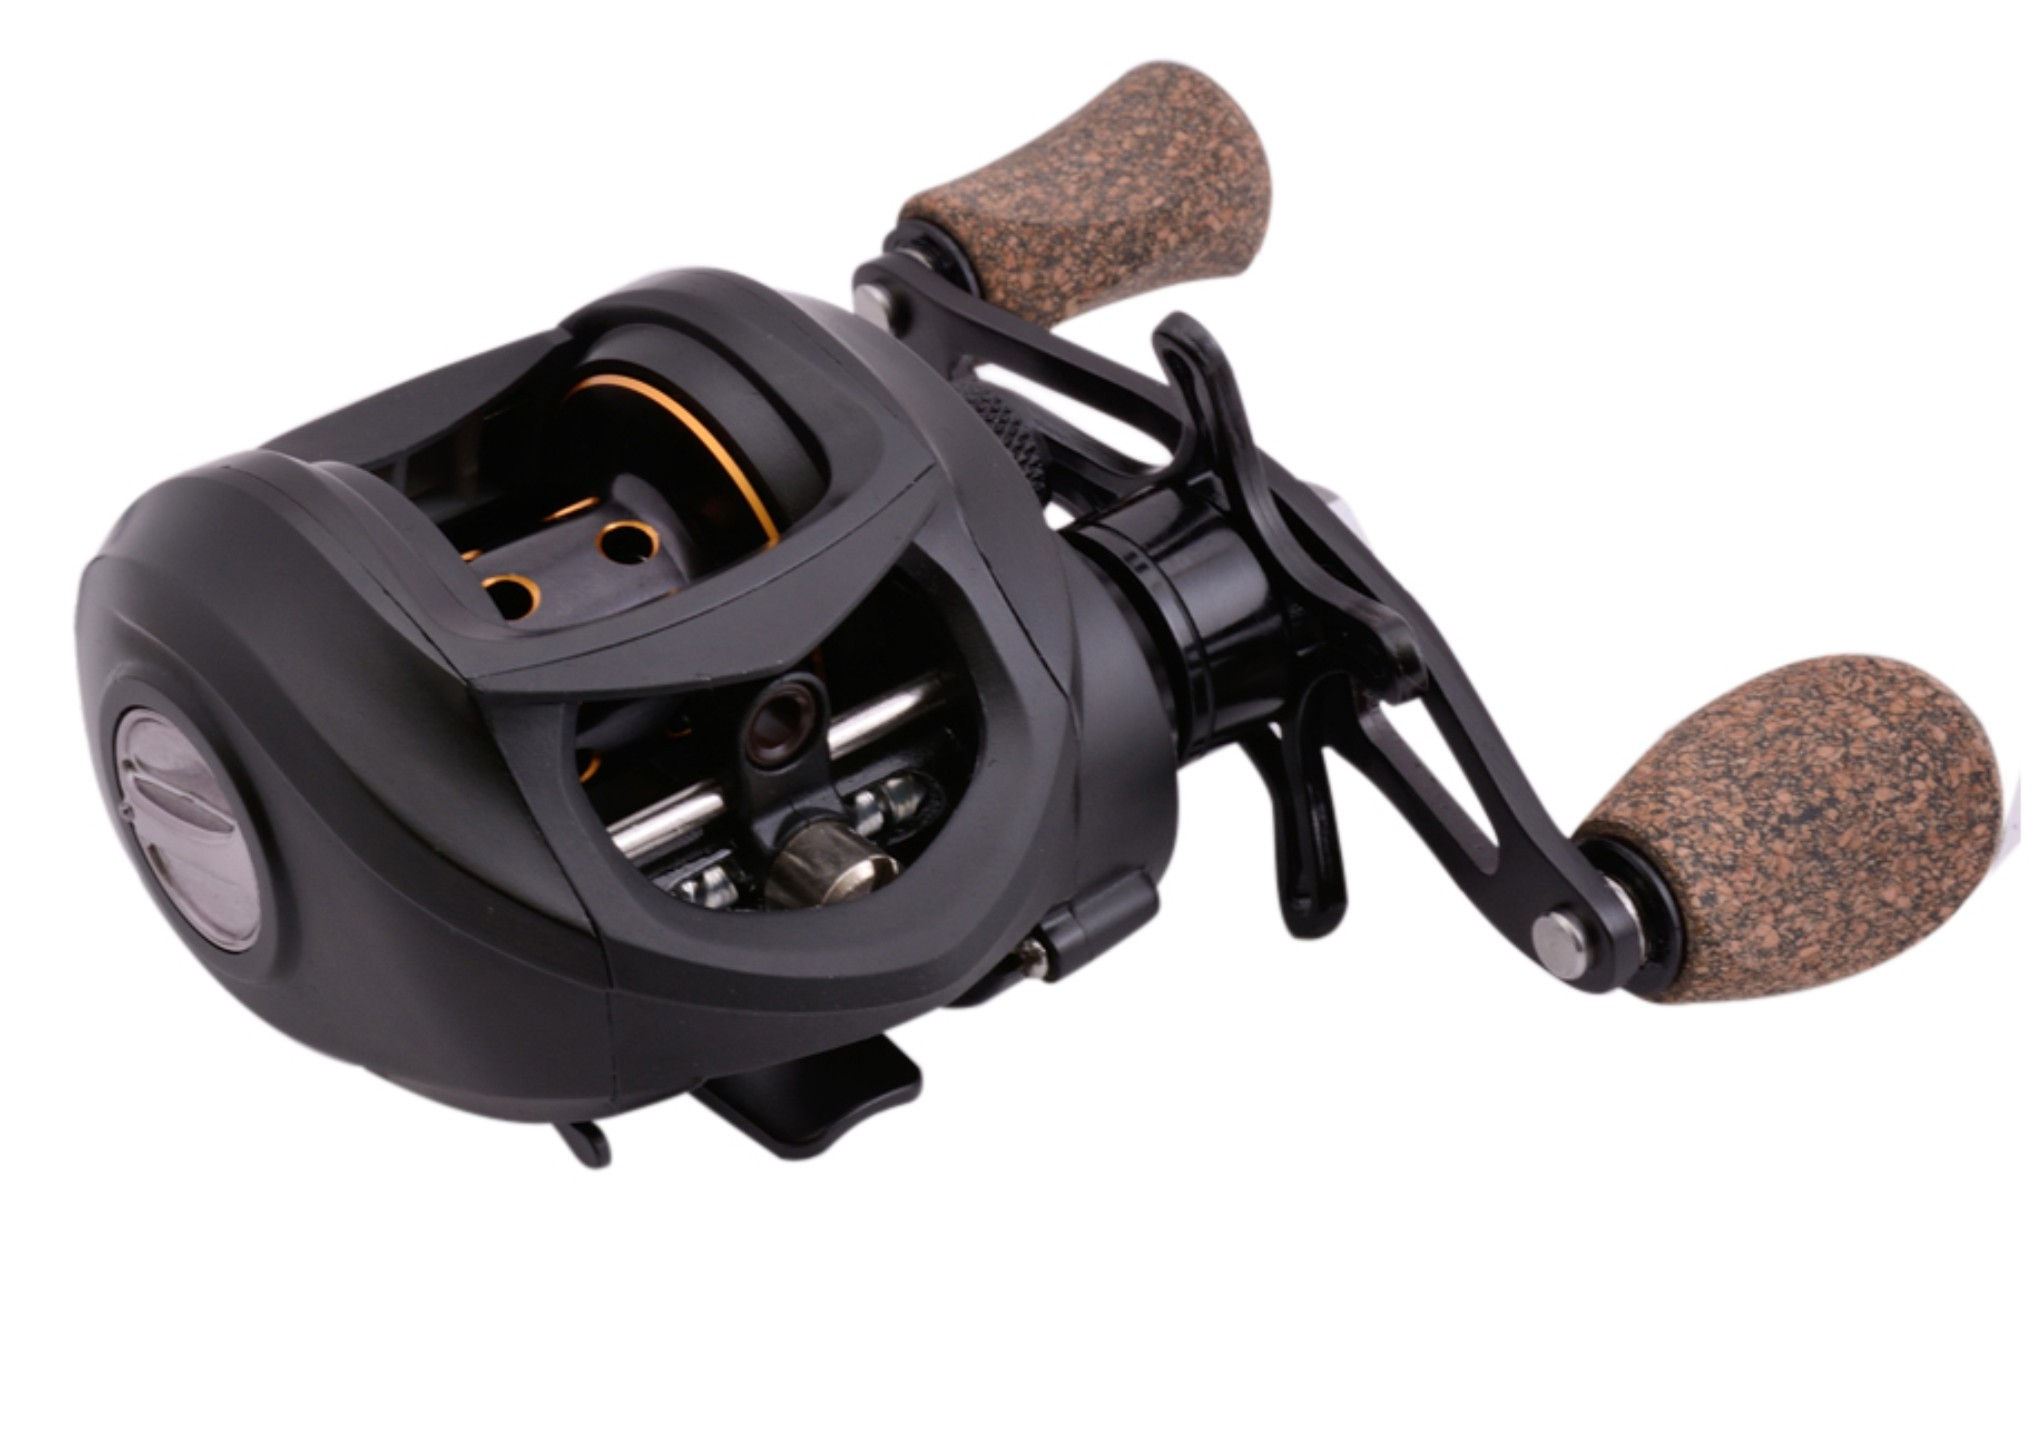 High End Baitcast Reel (Pro caster II)